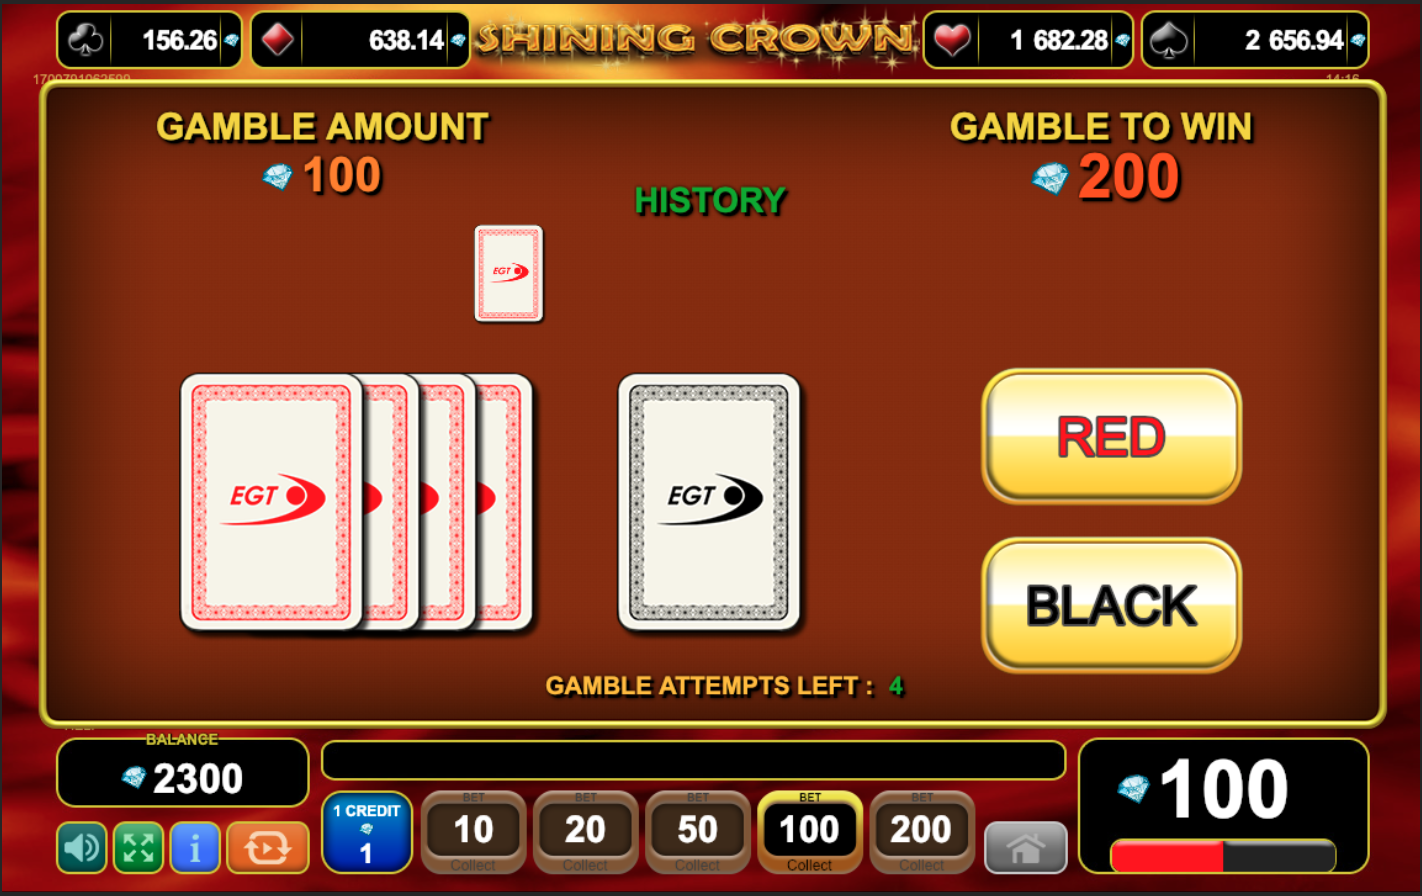 Shining Crown gamble function